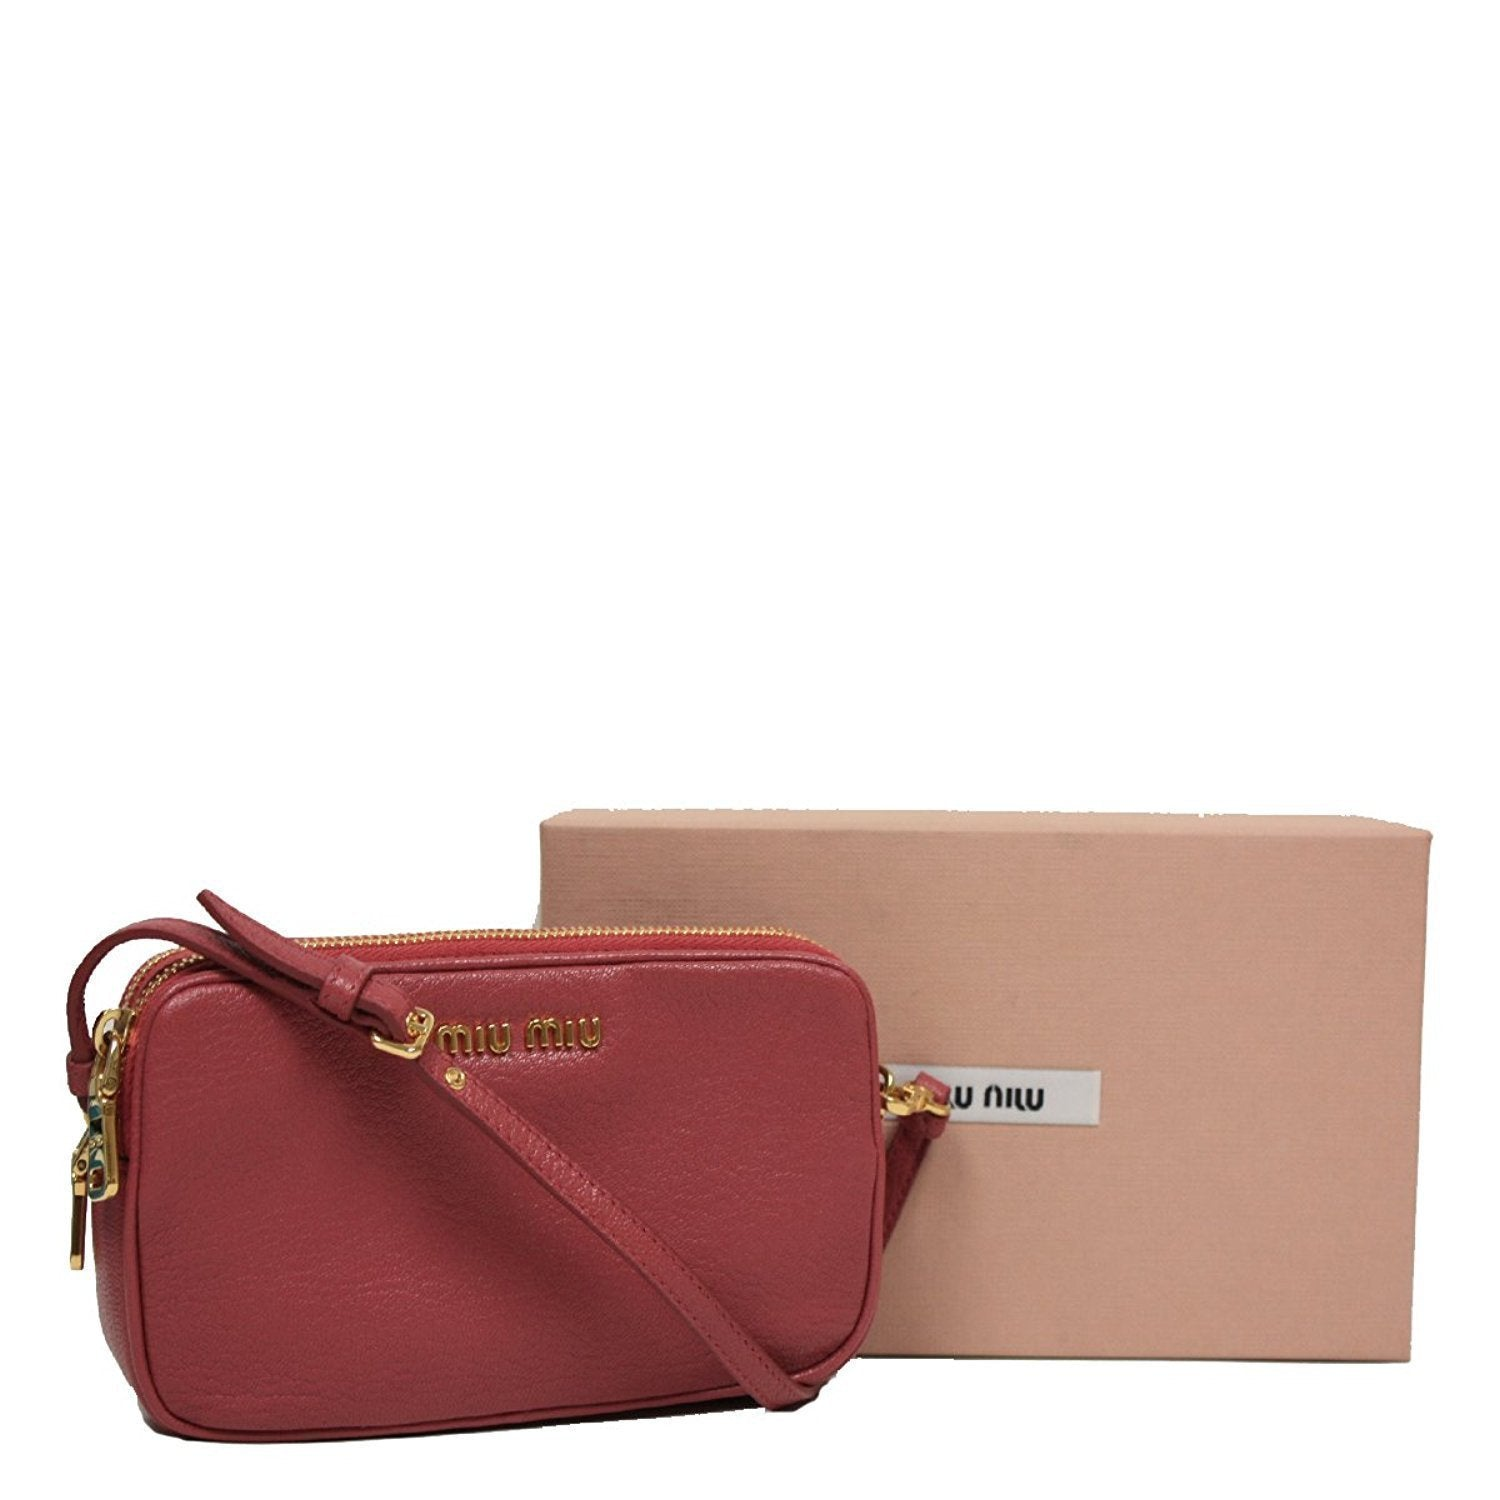 Miu Miu by Prada Women's Rose Pink Leather Wristlet Pouch Bag Small 5ARH02